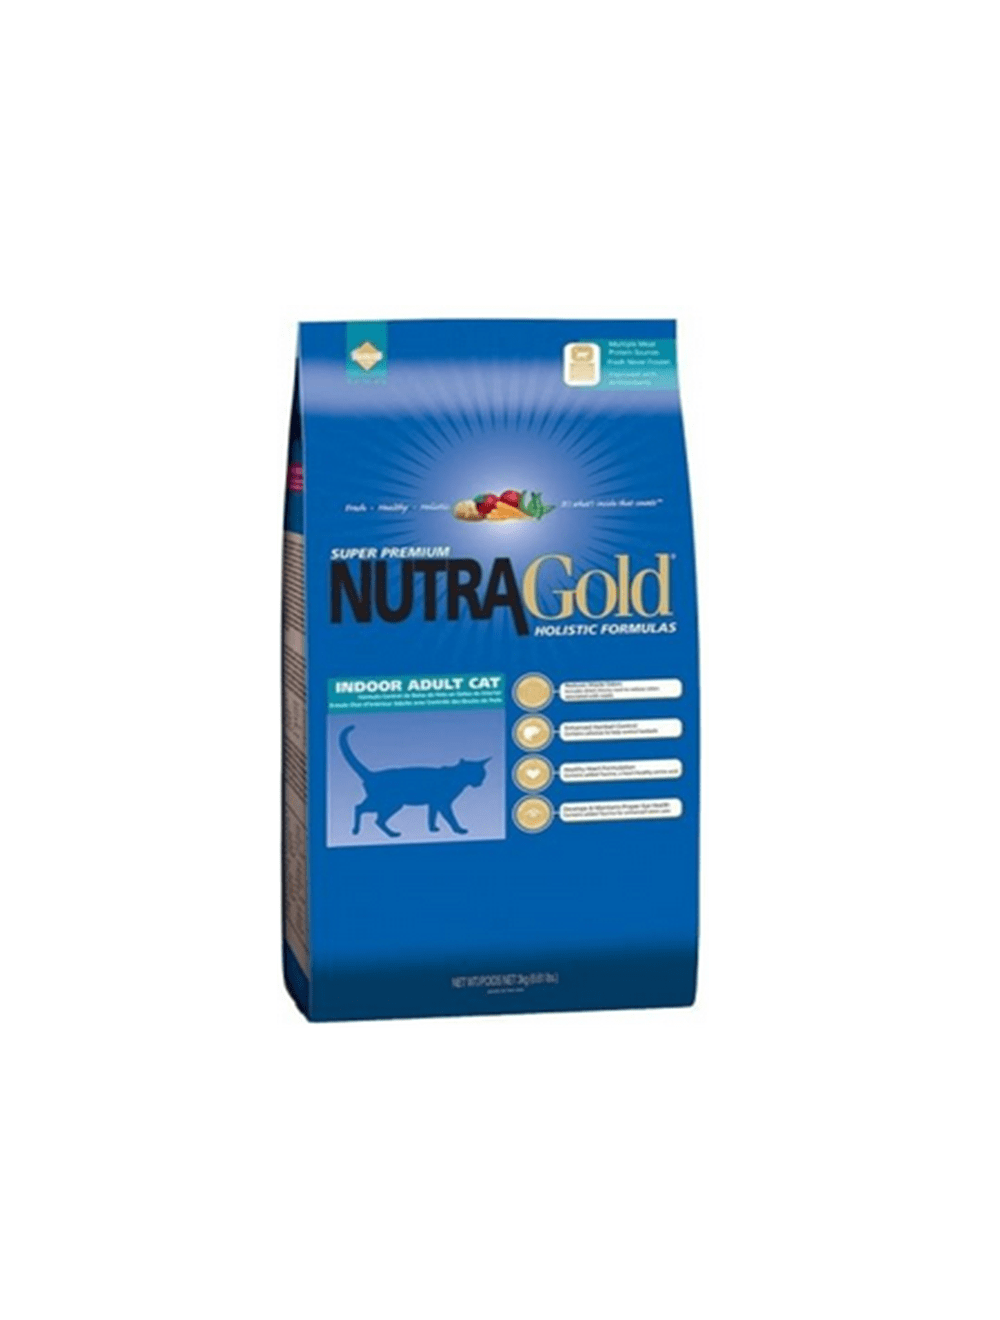 Nutra Gold Gatos Adultos de Interiores